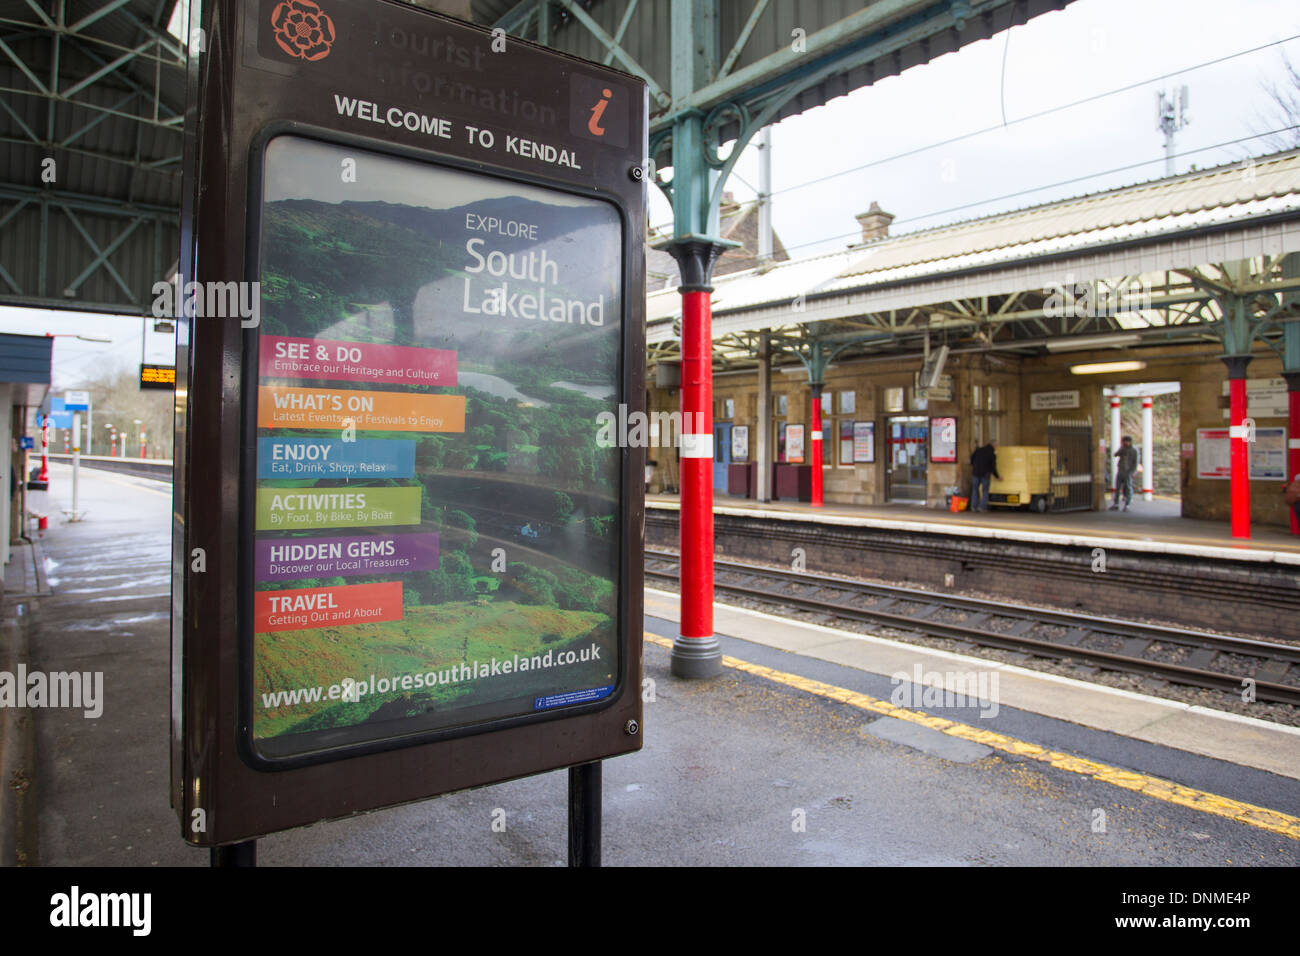 Welcome to Kendal Explore South Lakeland poster at Oxenholme railway station - Stock Image